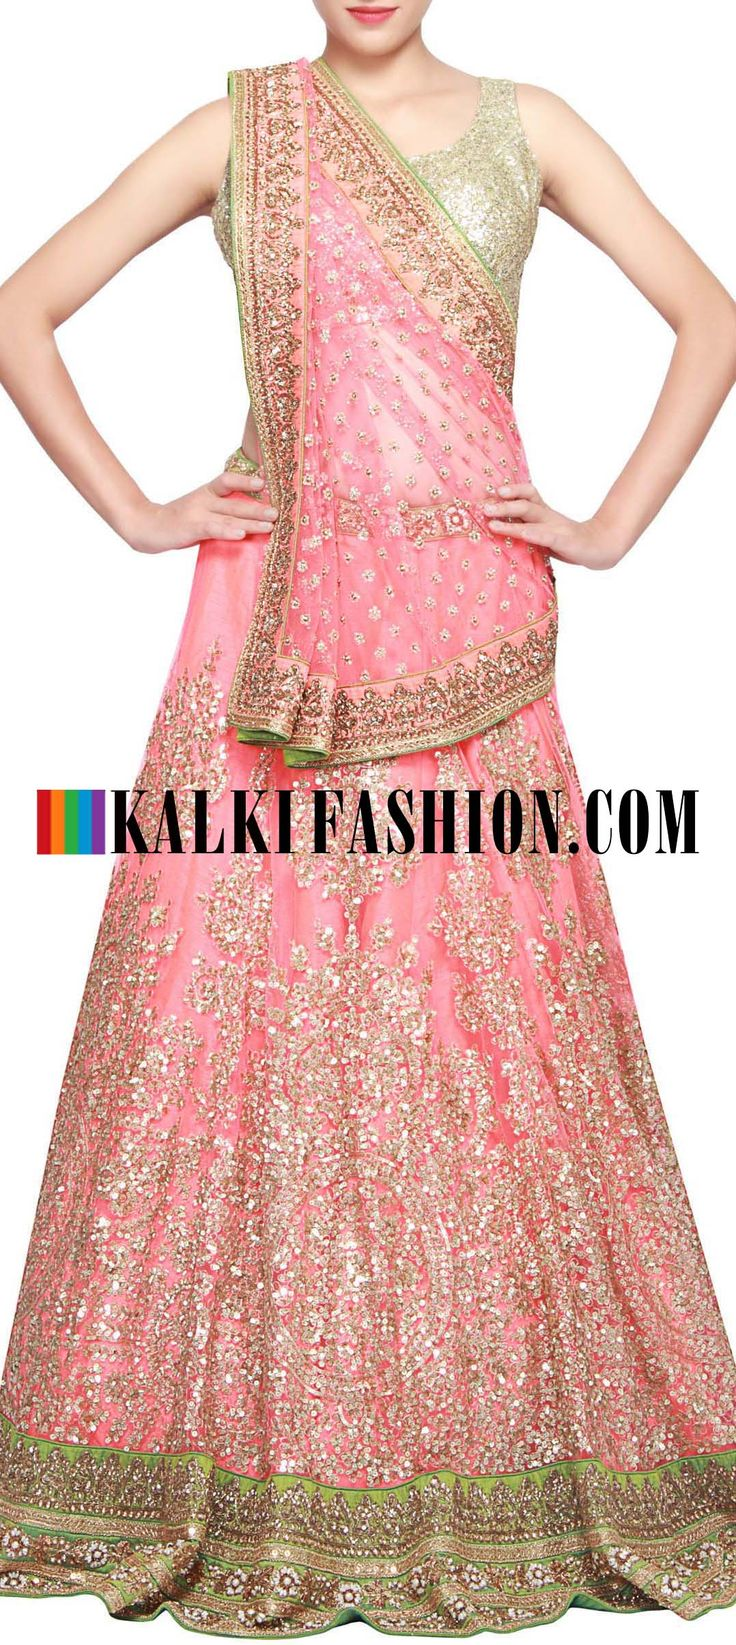 Buy Online from the link below. We ship worldwide (Free Shipping over US$100) http://www.kalkifashion.com/dark-peach-lehenga-featuring-in-sequence-embroidery-only-on-kalki.html